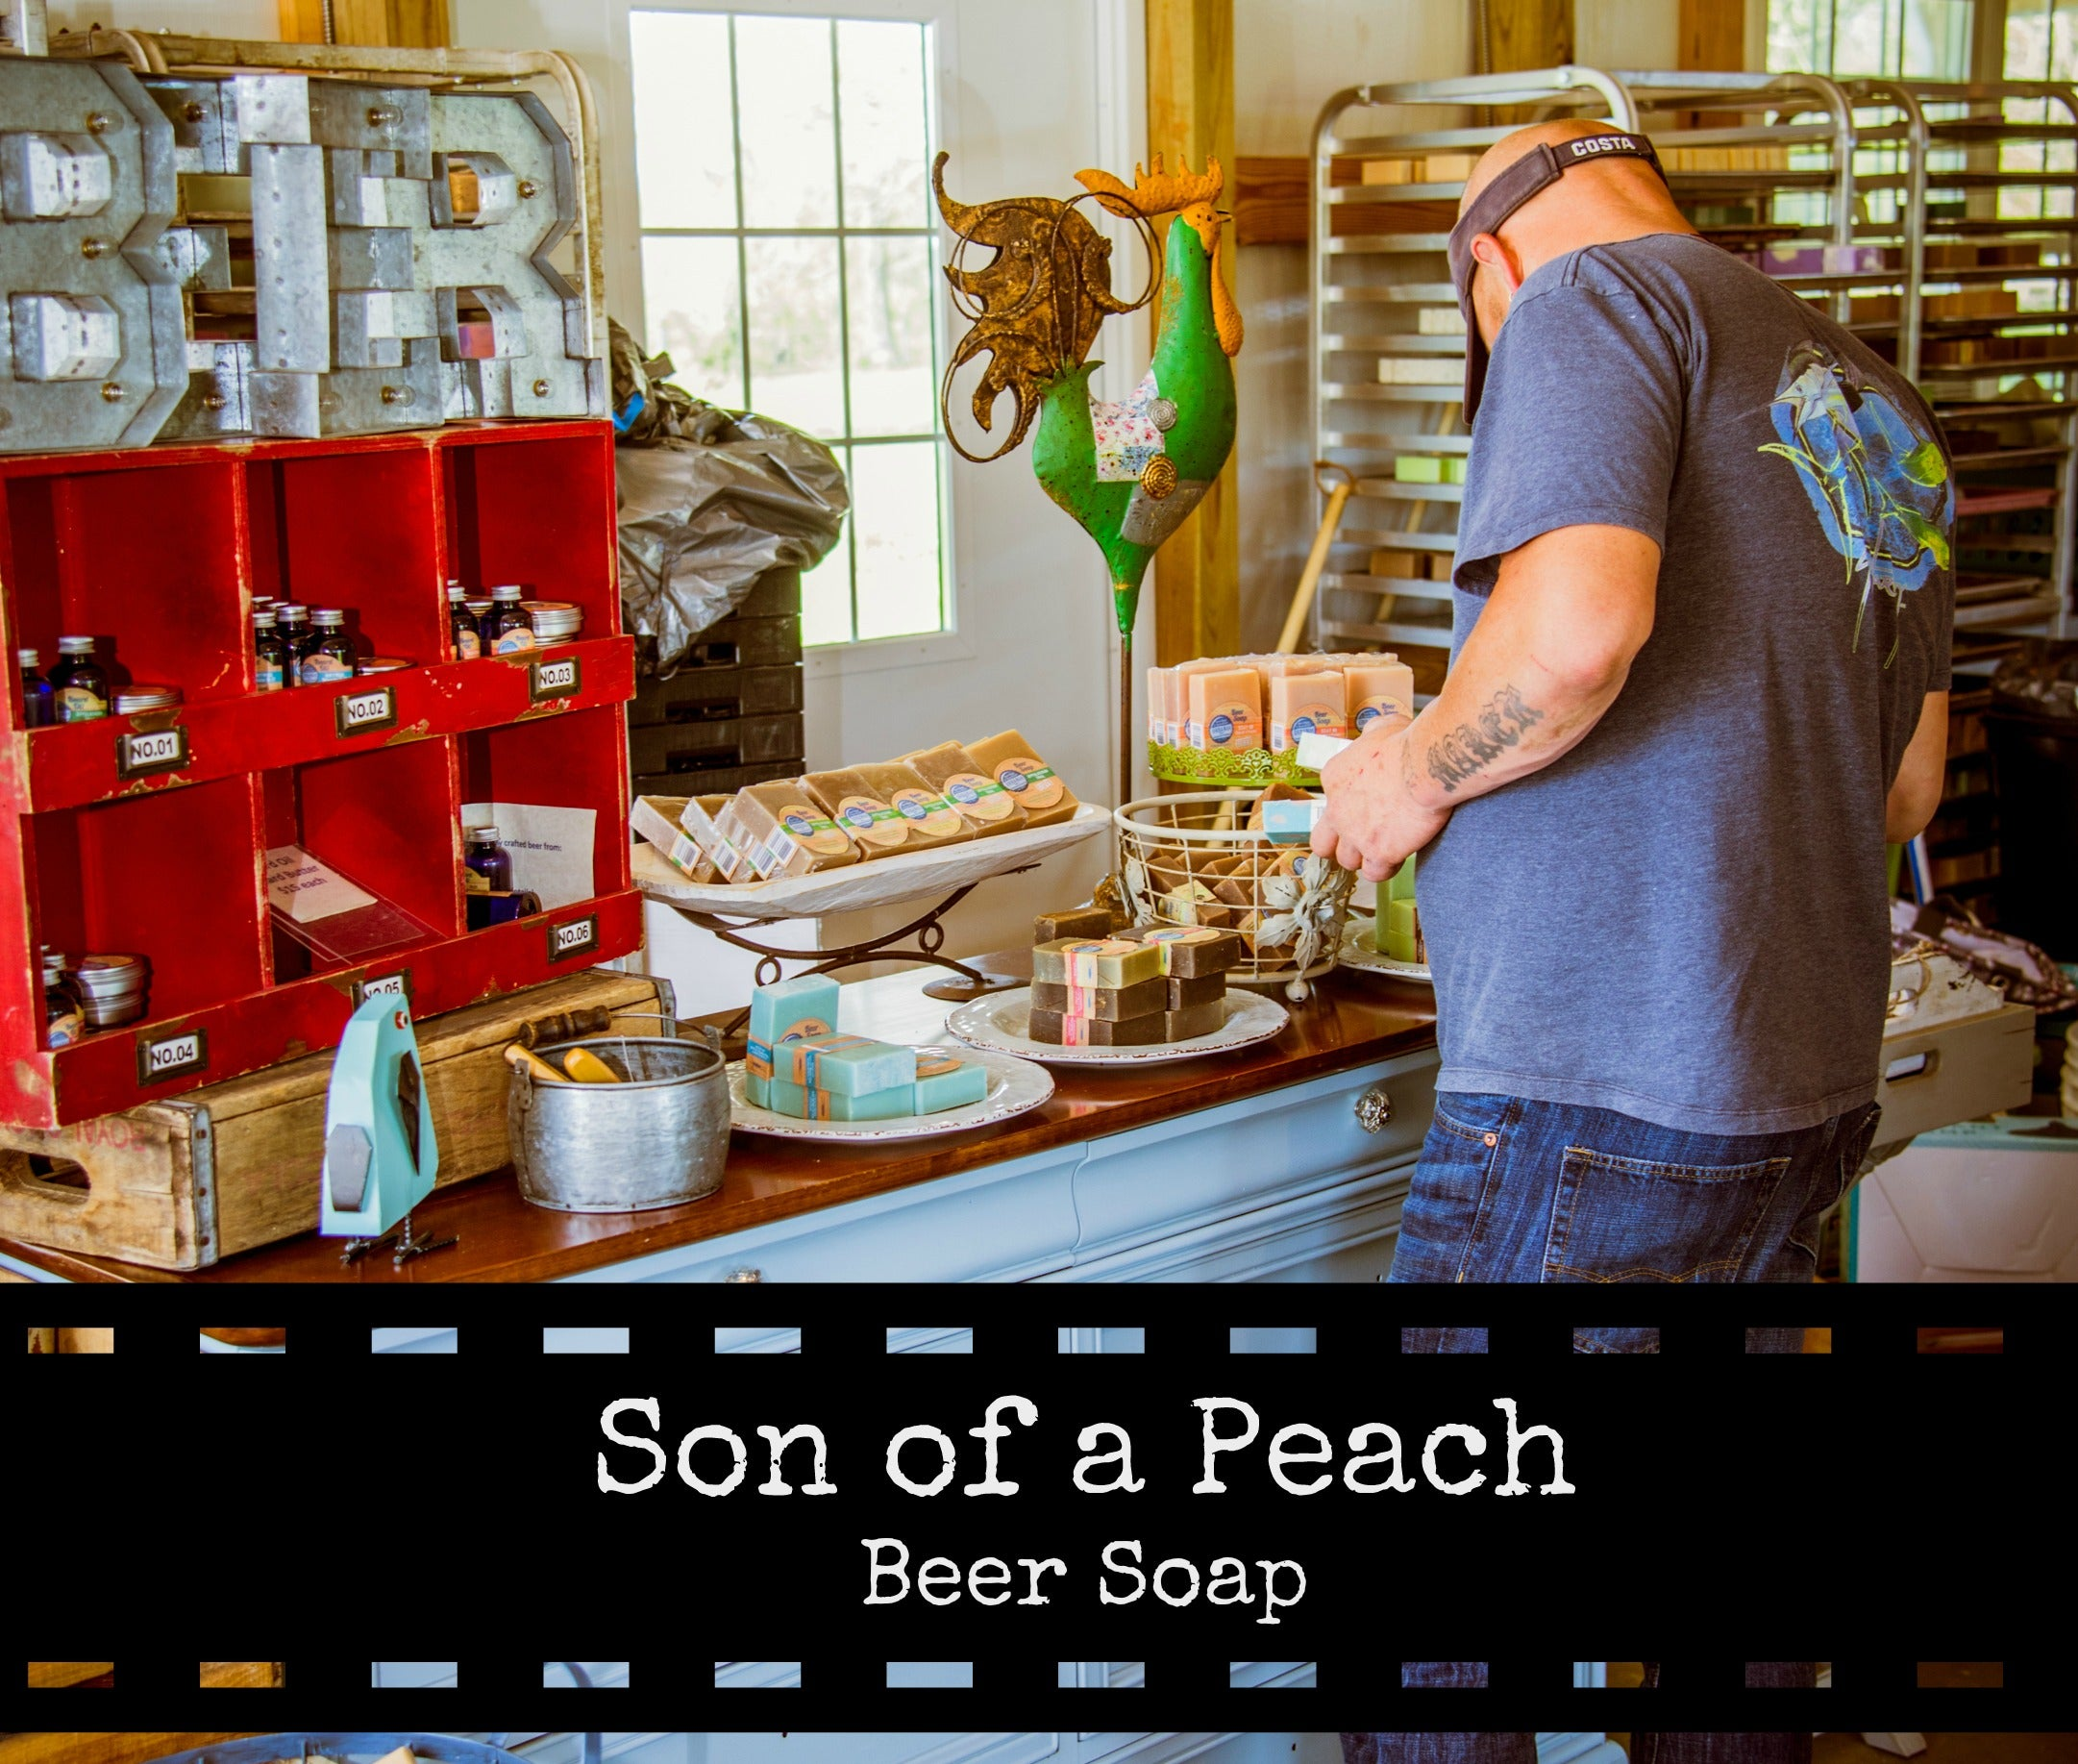 Son of a Peach Handcrafted Beer Soap